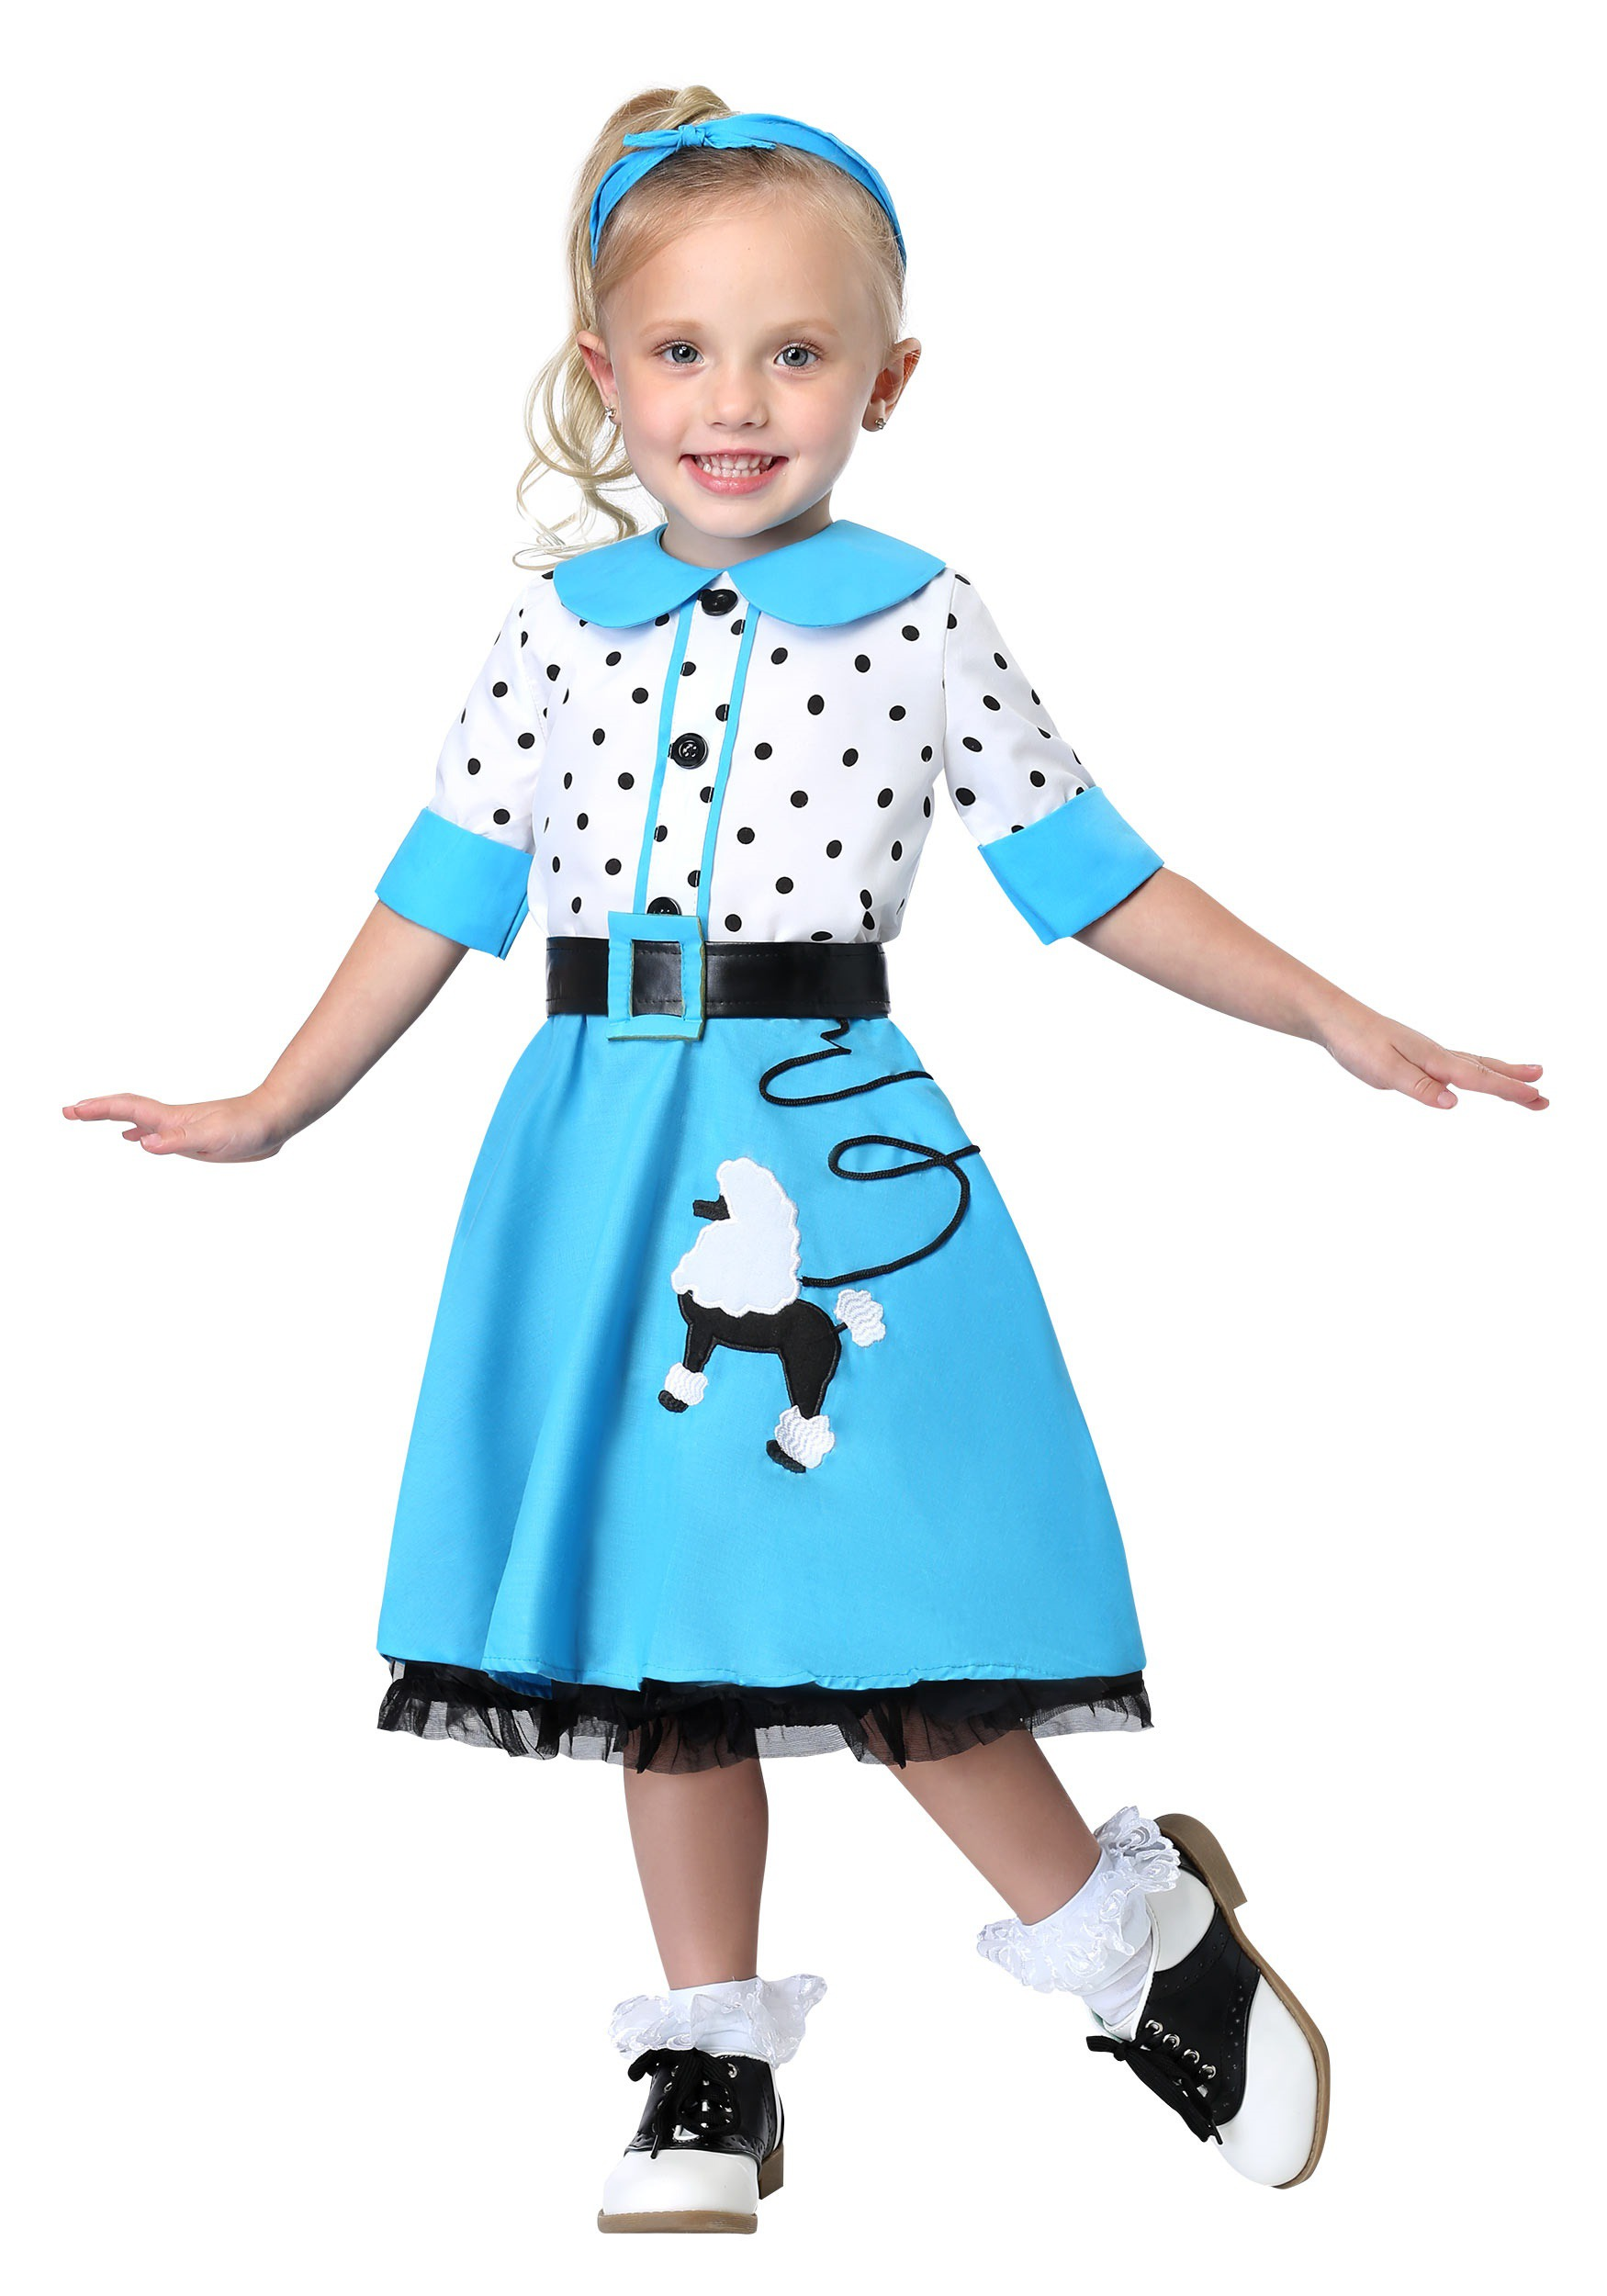 Sock Hop Cutie Costume For Toddlers